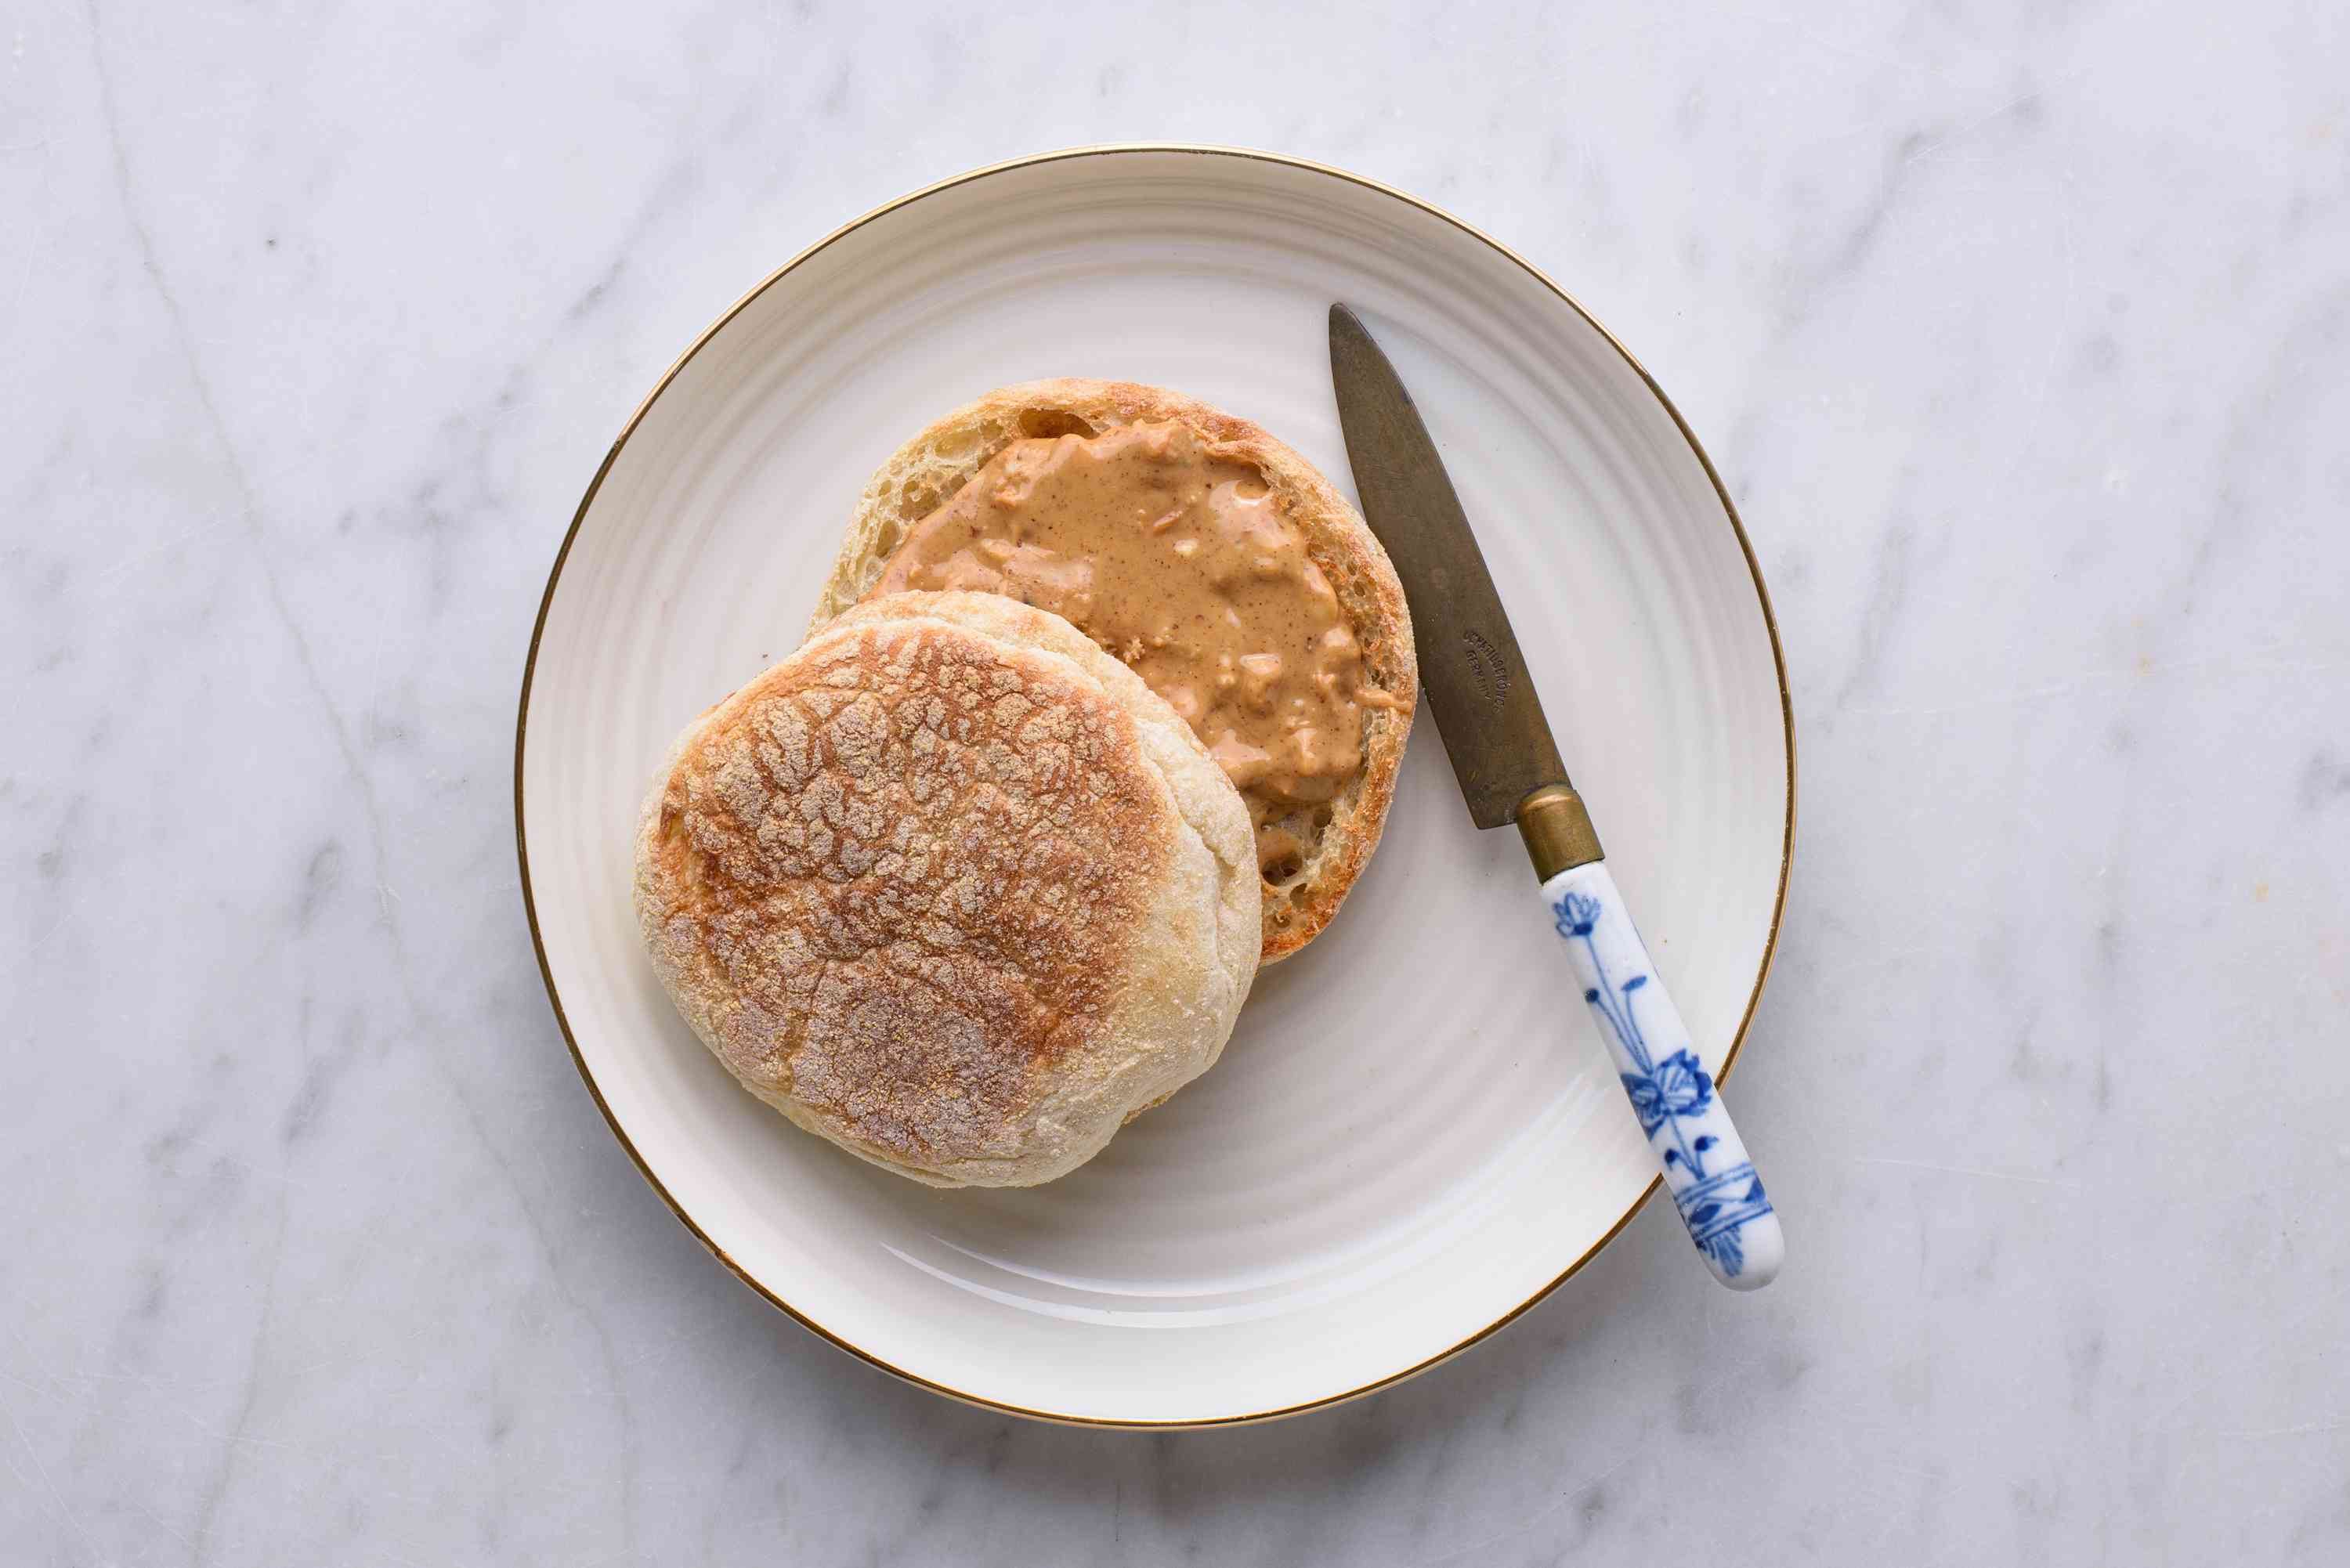 toasted English muffin with peanut butter